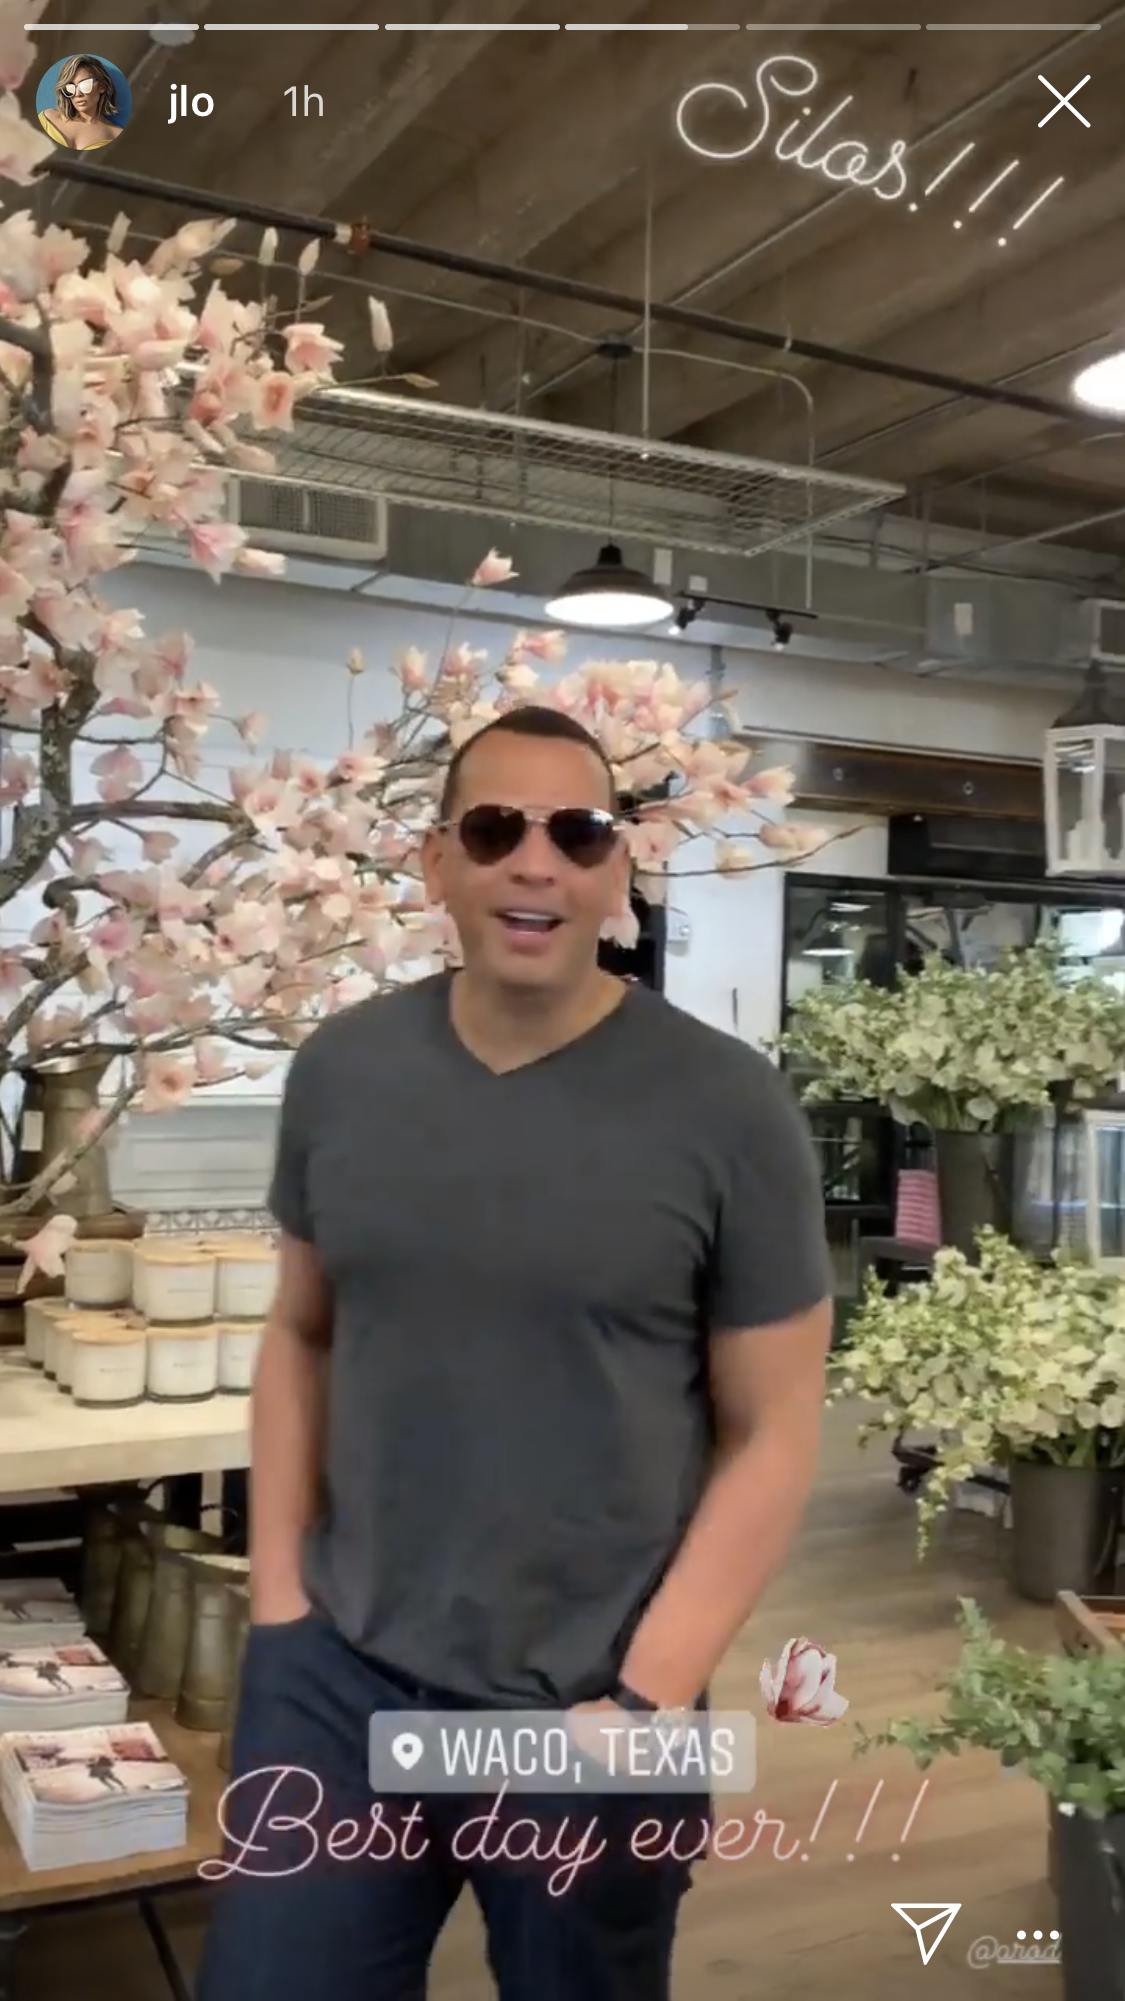 "Jennifer Lopez, Alex Rodriguez Meet Up With Chip and Joanna Gaines: Pics - ""Baby, what are you doing in the Silos,"" Lopez asked her beau of the Gaines' complex, which covers two city blocks and includes food trucks, a garden, seed and supply store and bakery. ""It's beautiful,"" he replied."